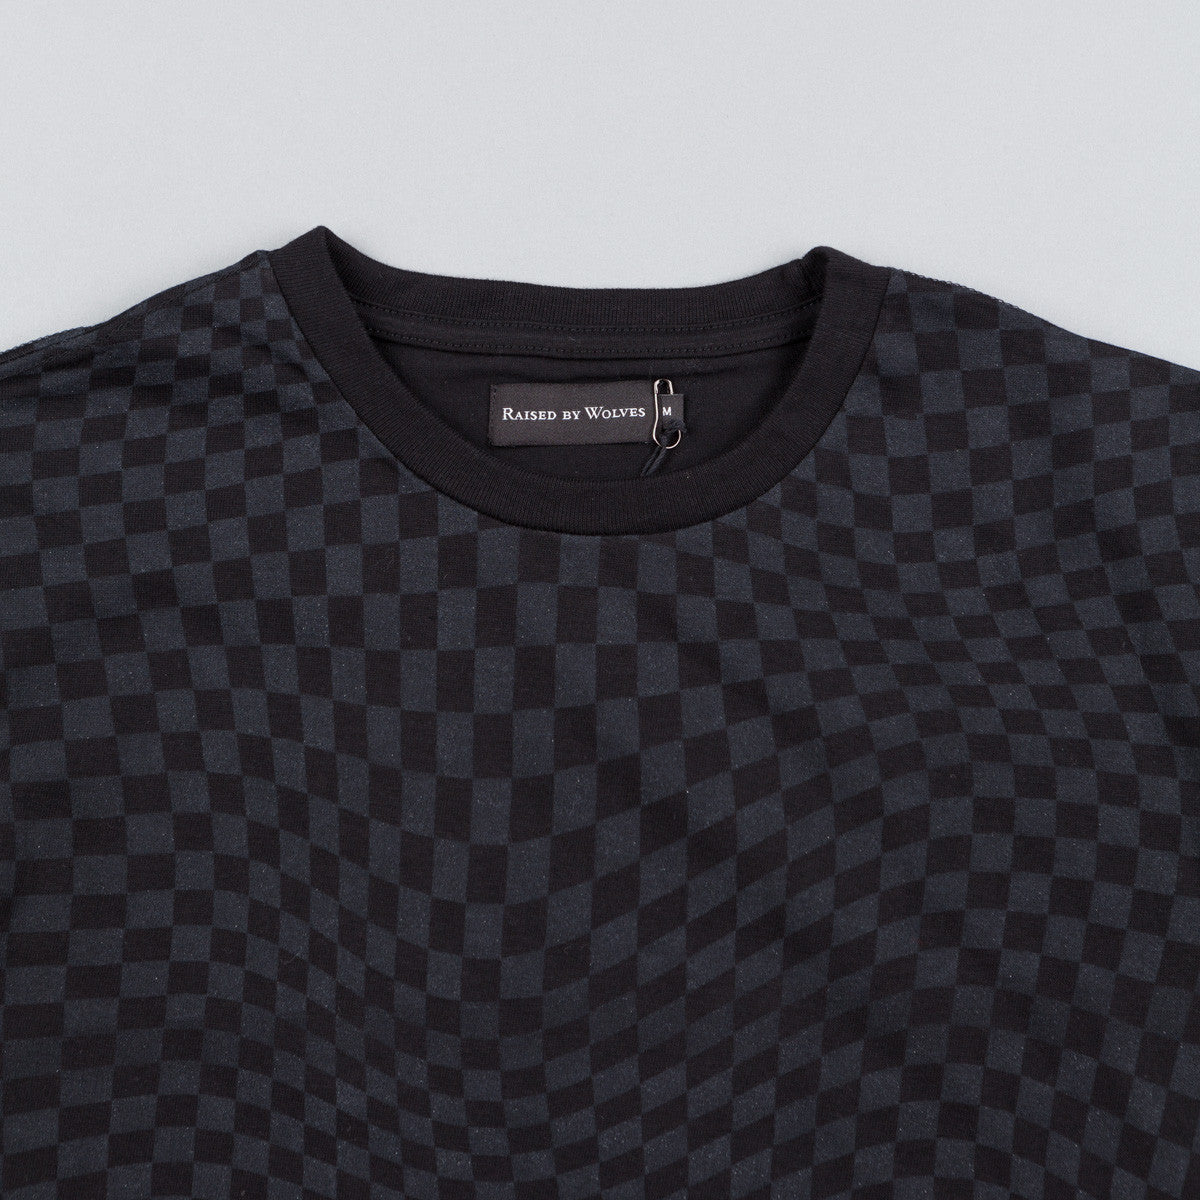 Raised By Wolves Warped Checkerboard T-Shirt - Black